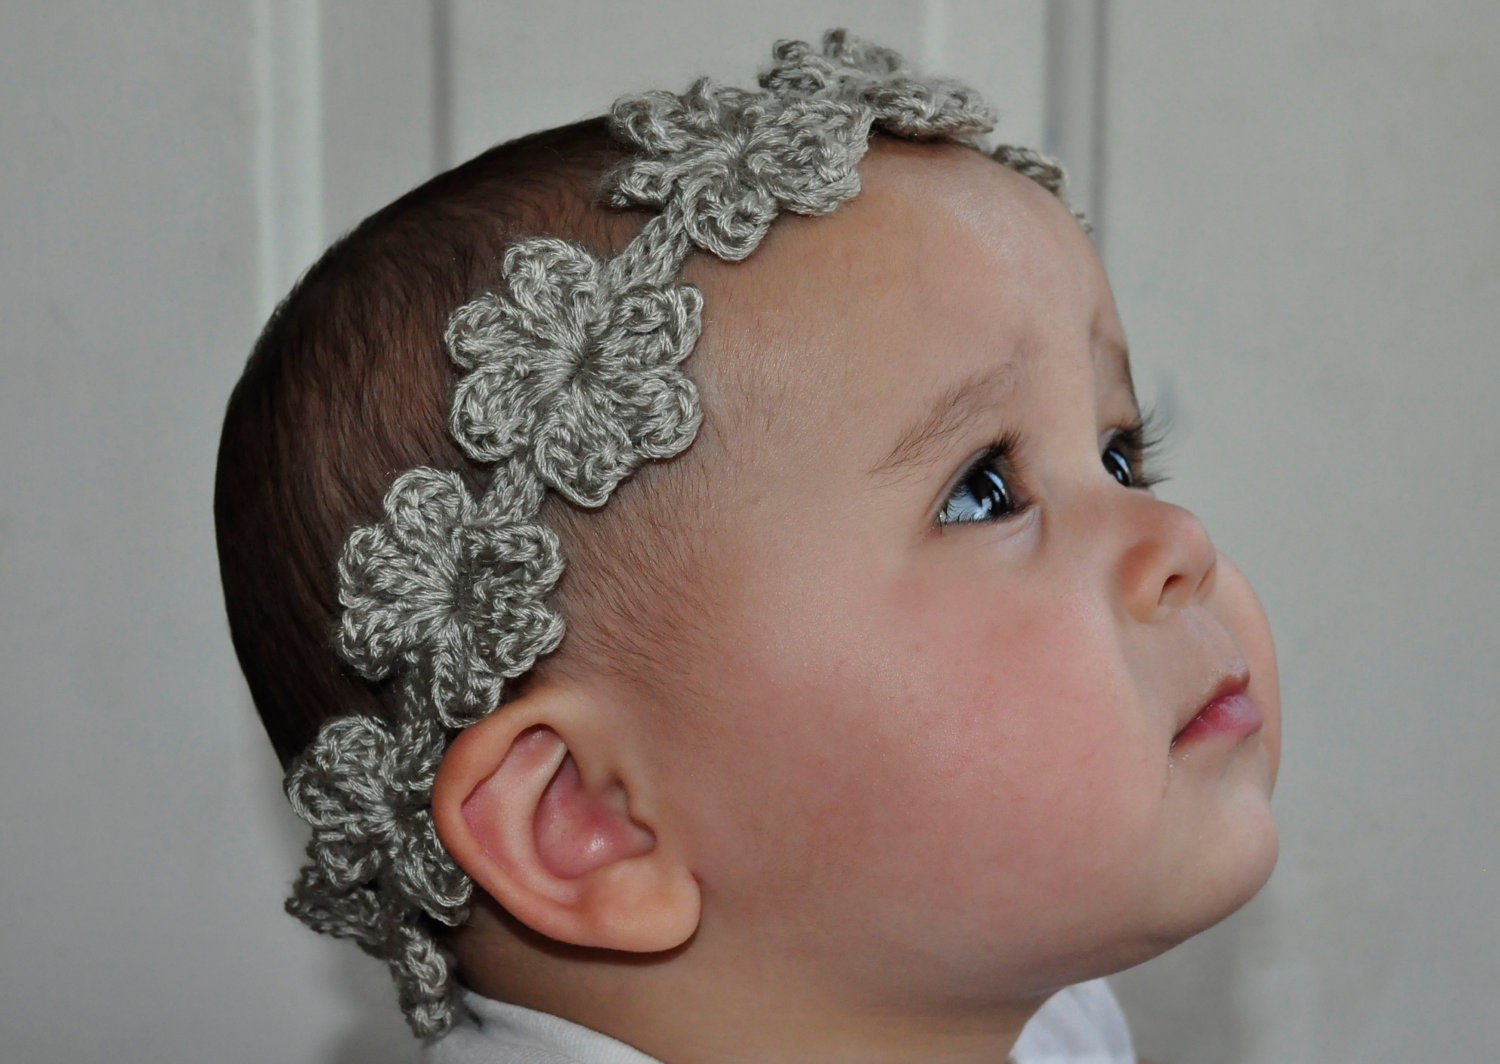 Crochet Headband Pattern For Baby With Flower : Crochet Pattern PDF Headband / Bracelet Flower Garland